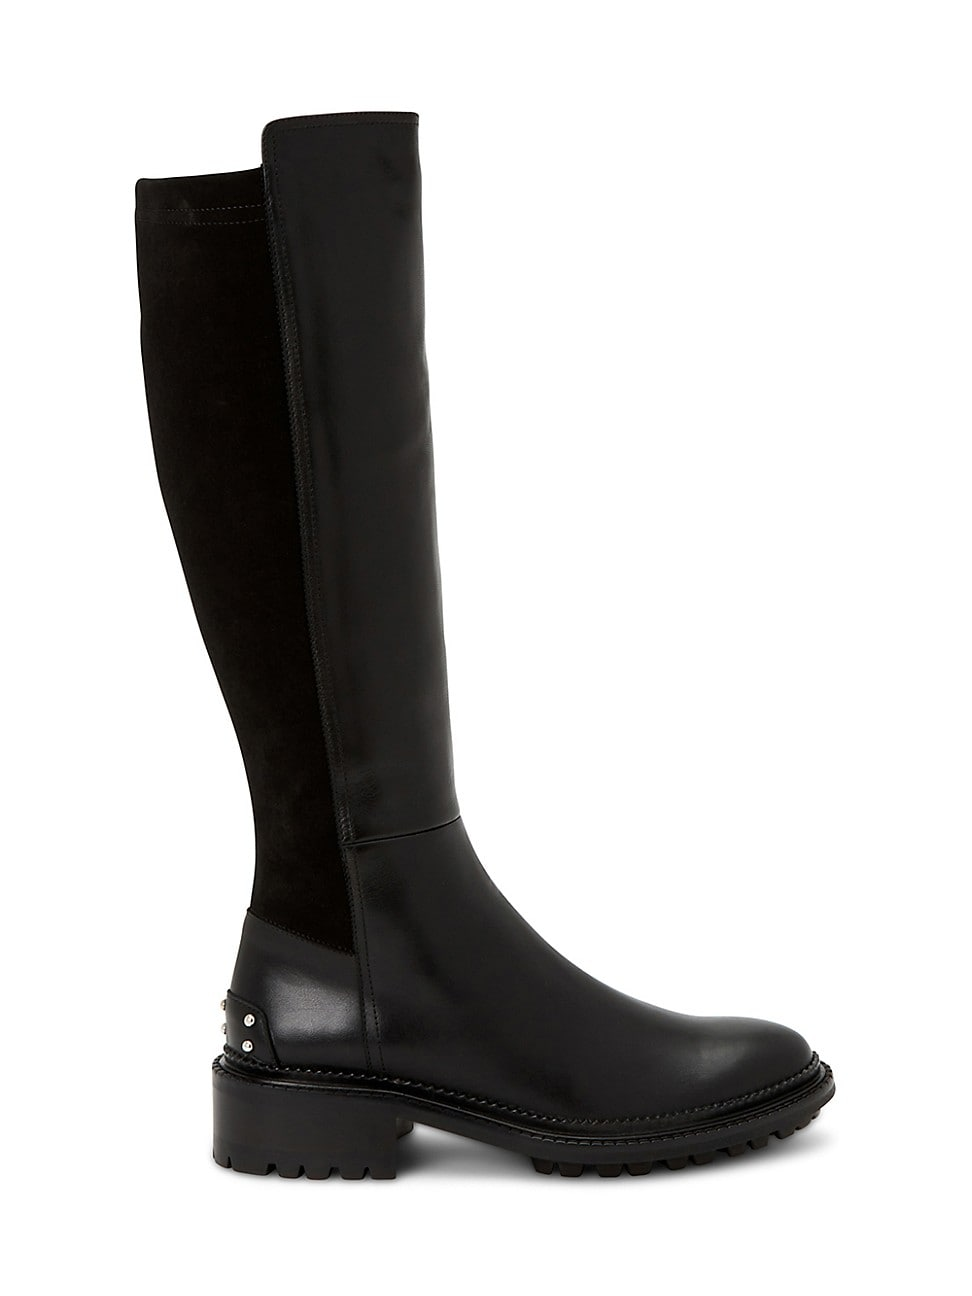 Aquatalia WOMEN'S OMARA KNEE-HIGH LEATHER BOOTS